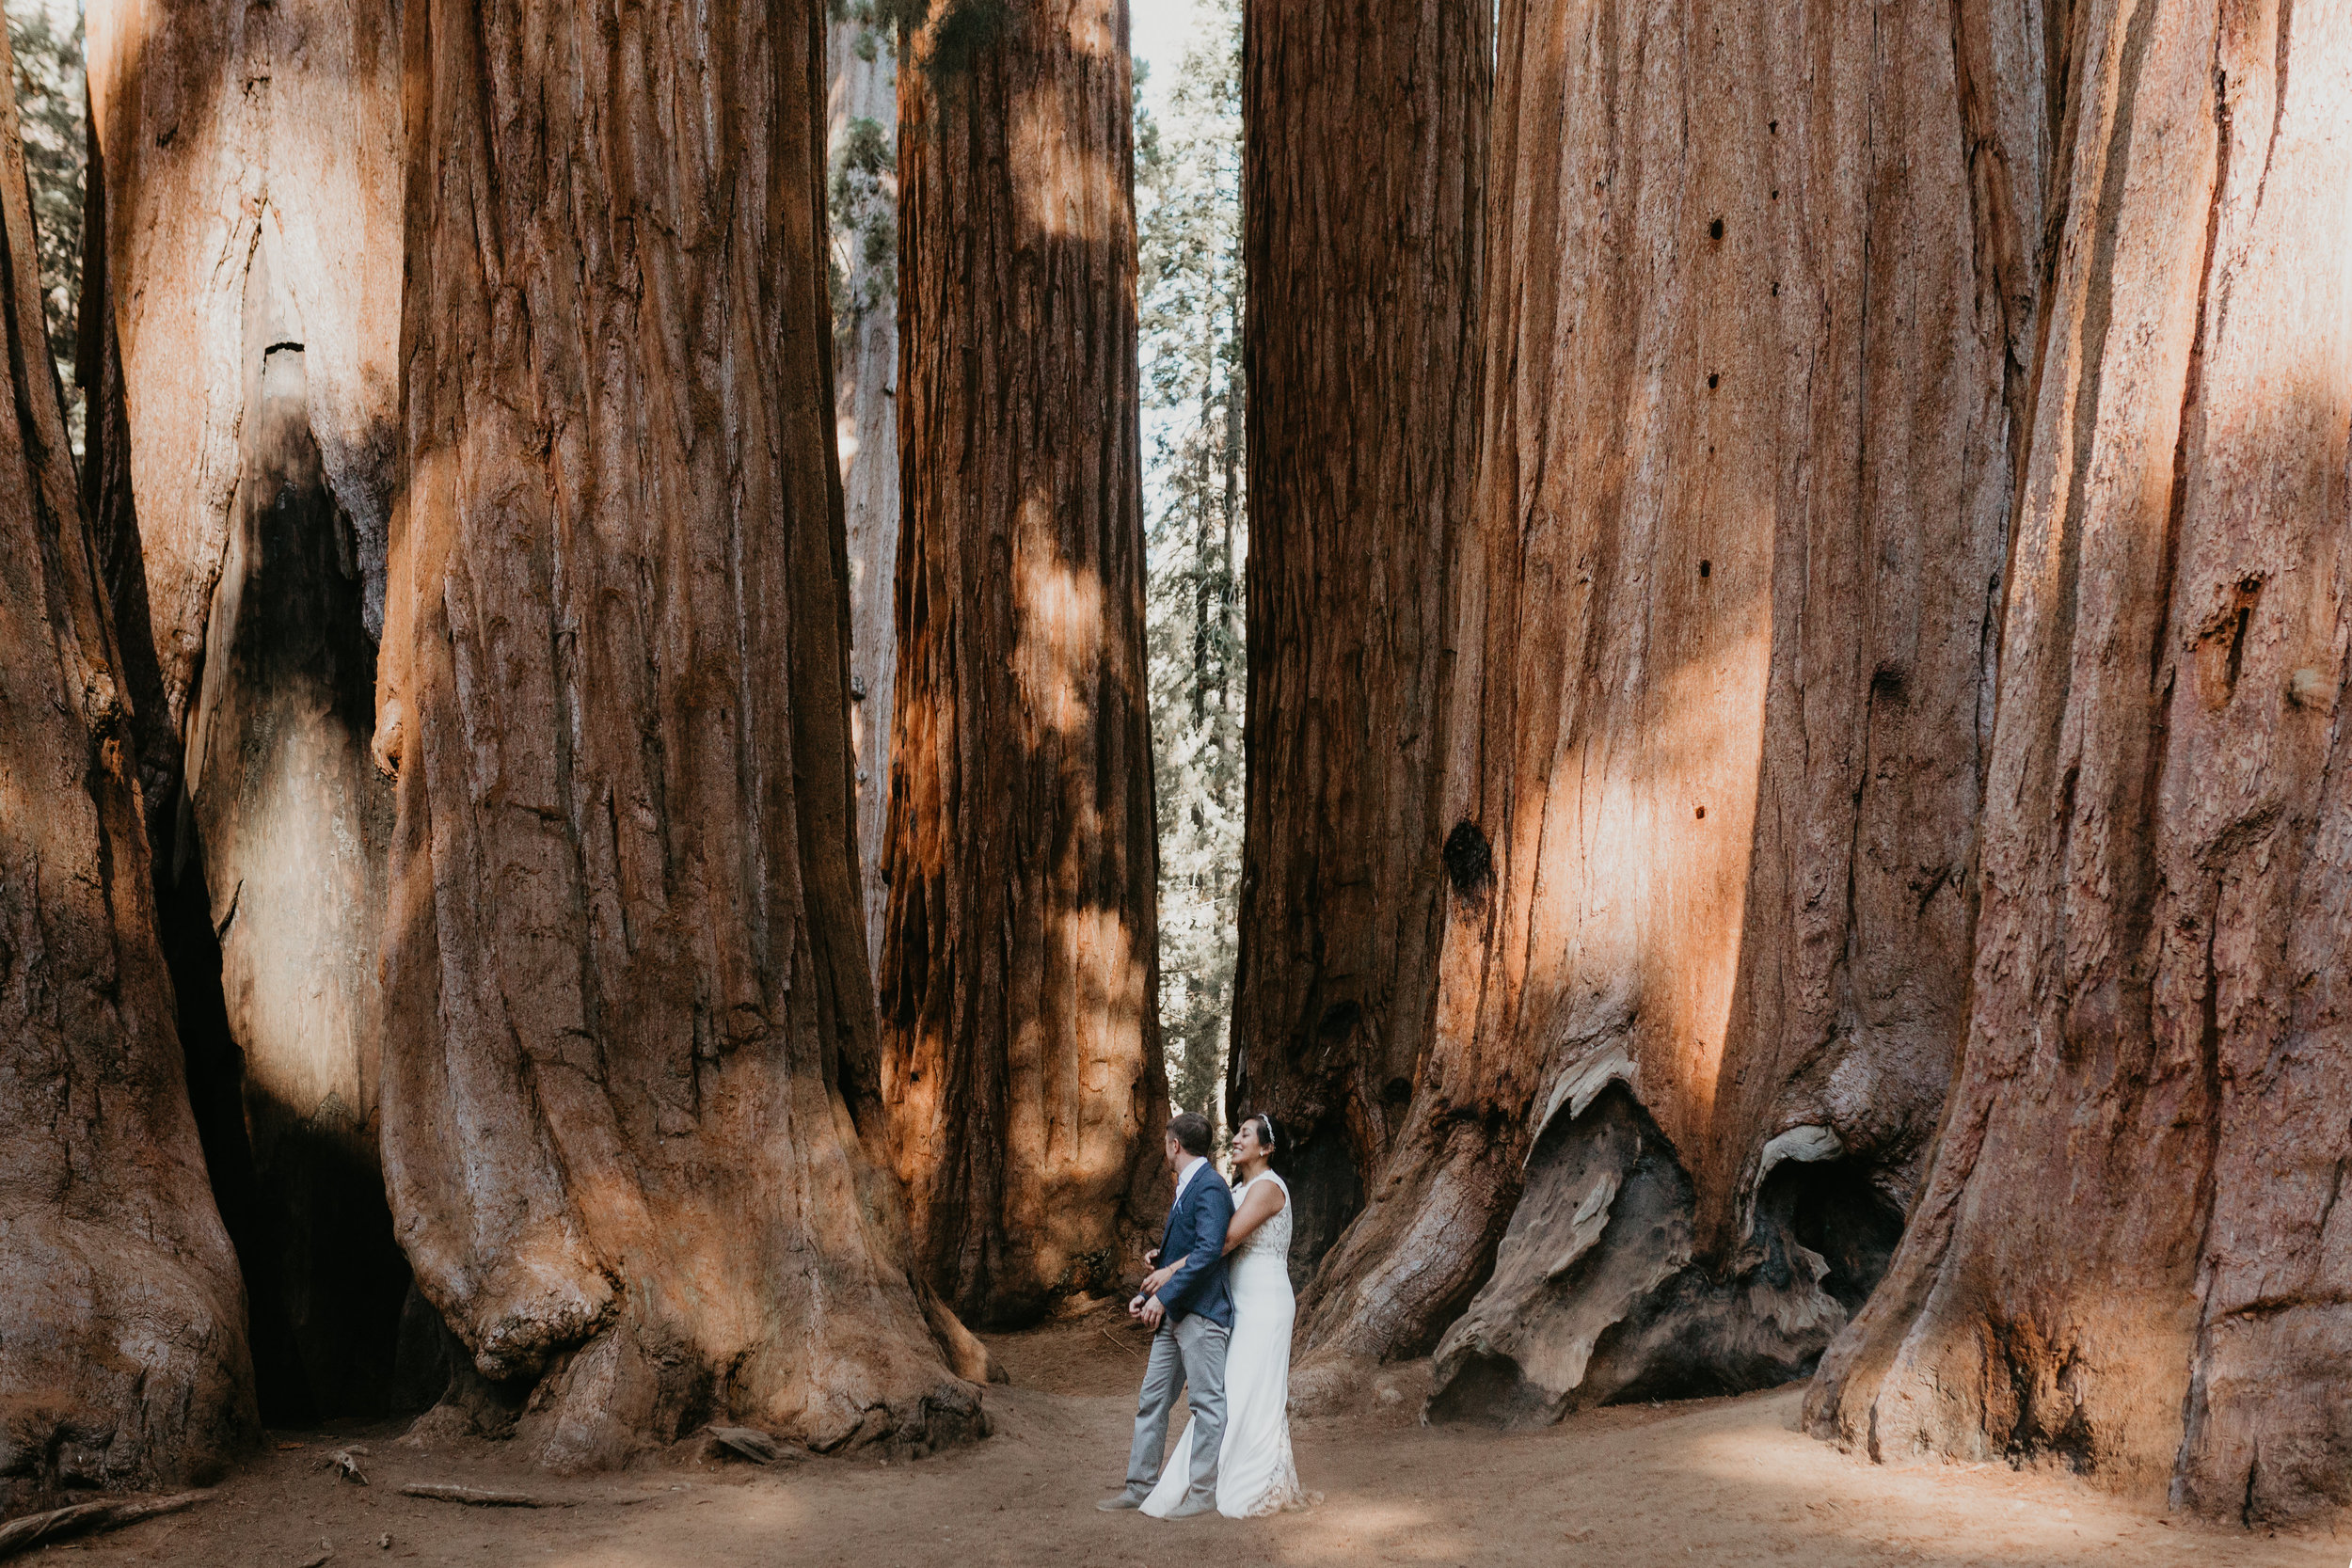 nicole-daacke-photography-sequoia-national-park-adventurous-elopement-sequoia-elopement-photographer-redwoods-california-intimate-wedding-photographer-15.jpg